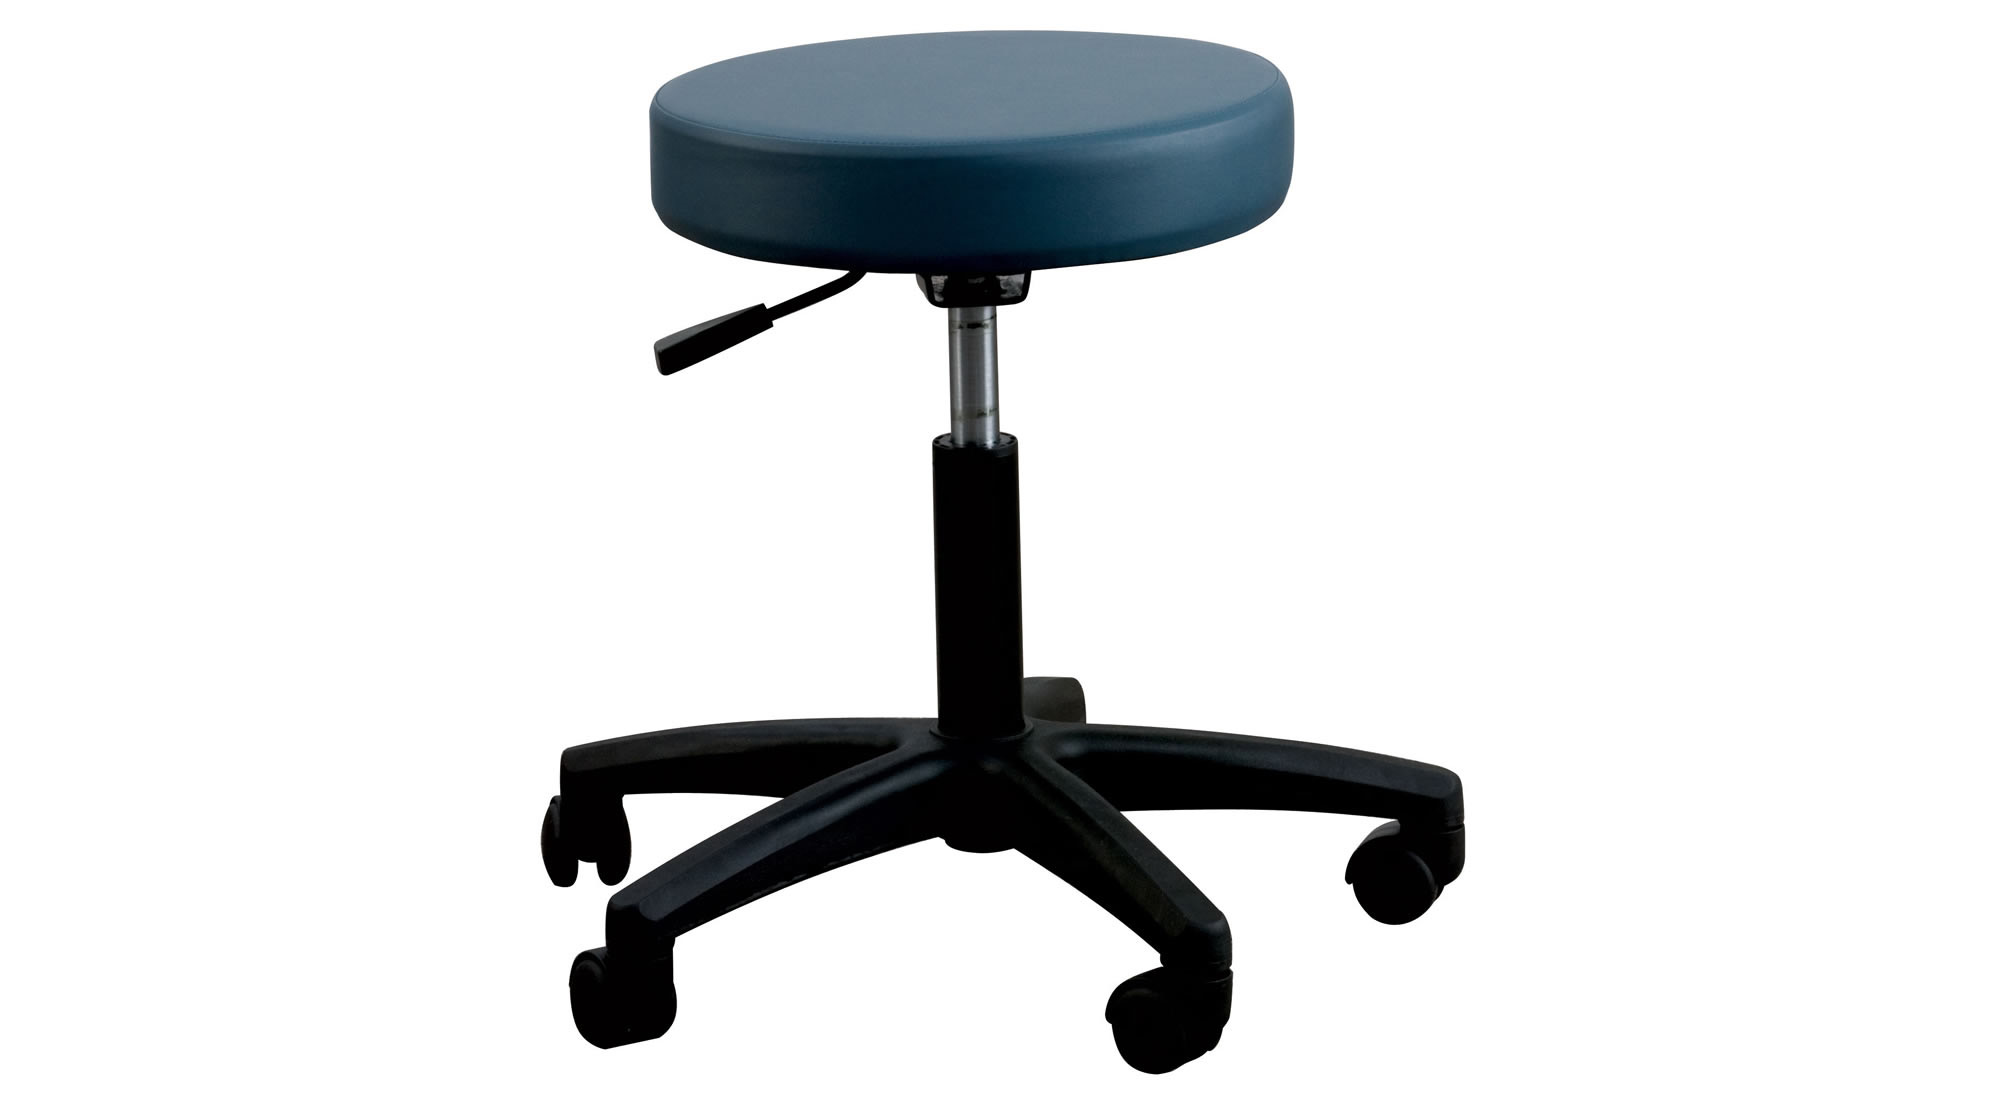 Small Stools Bowel Movement Bing Images